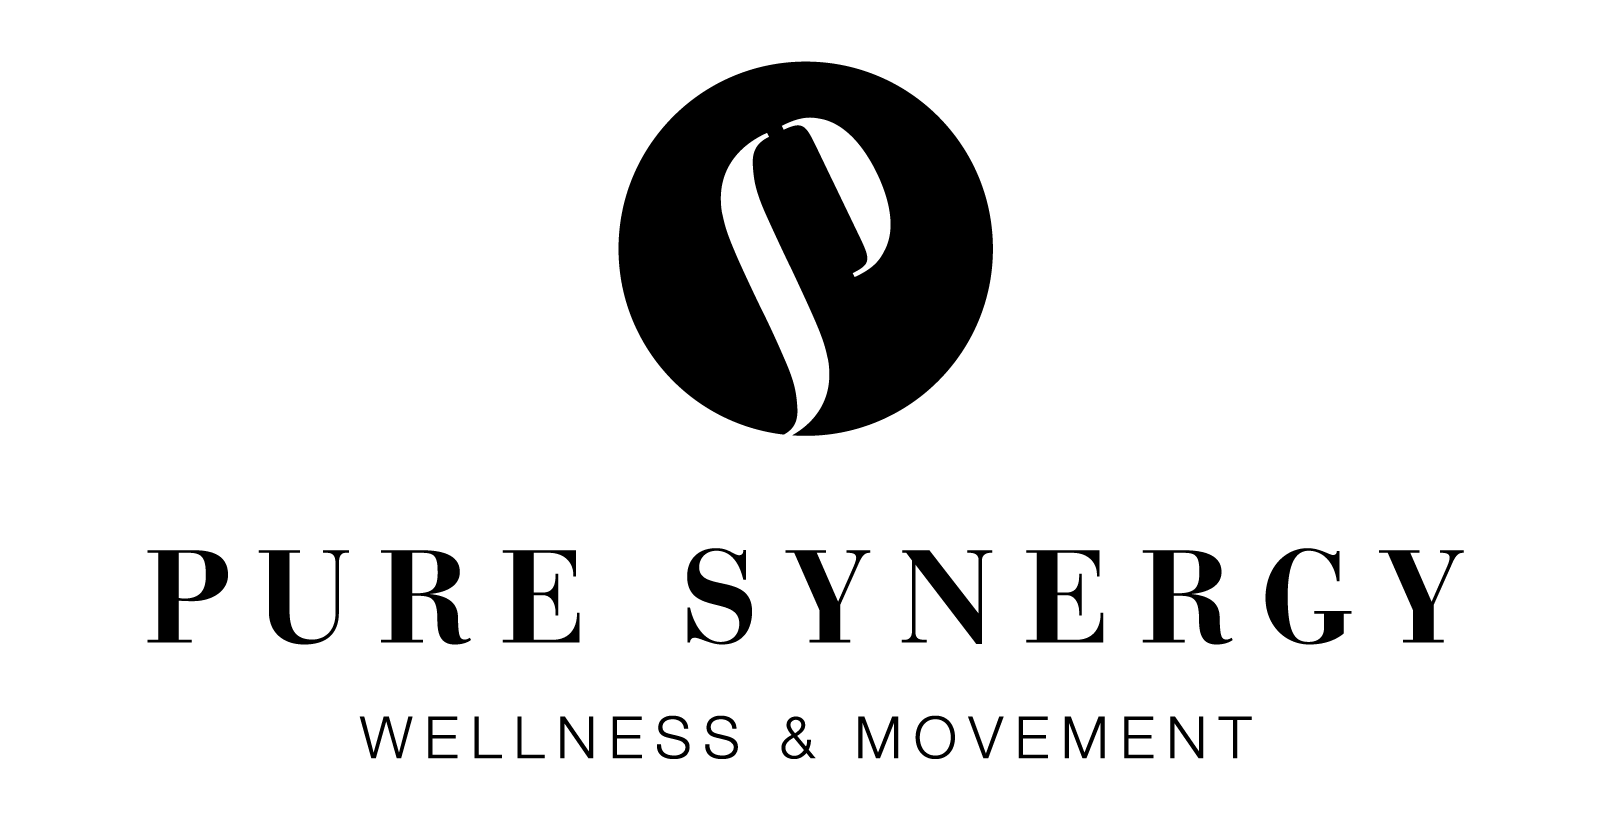 PureSynergy_horz_Logo2_black-01 - TRANSPARENT.png